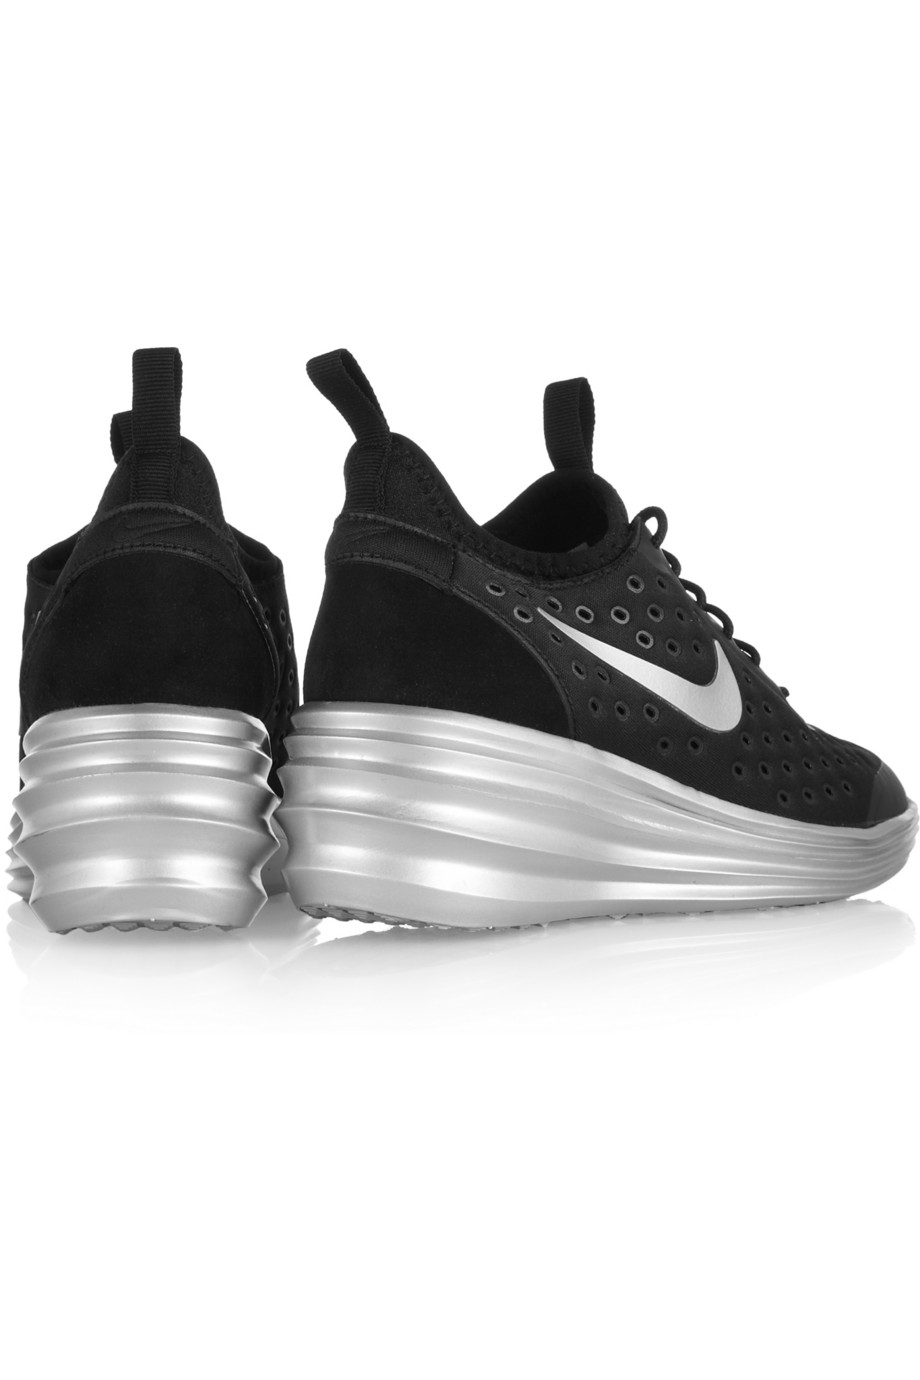 quality design 3aacf 658c0 ... get lyst nike lunarelite sky hi canvas and suede wedge sneakers in  black 1a62b ea943